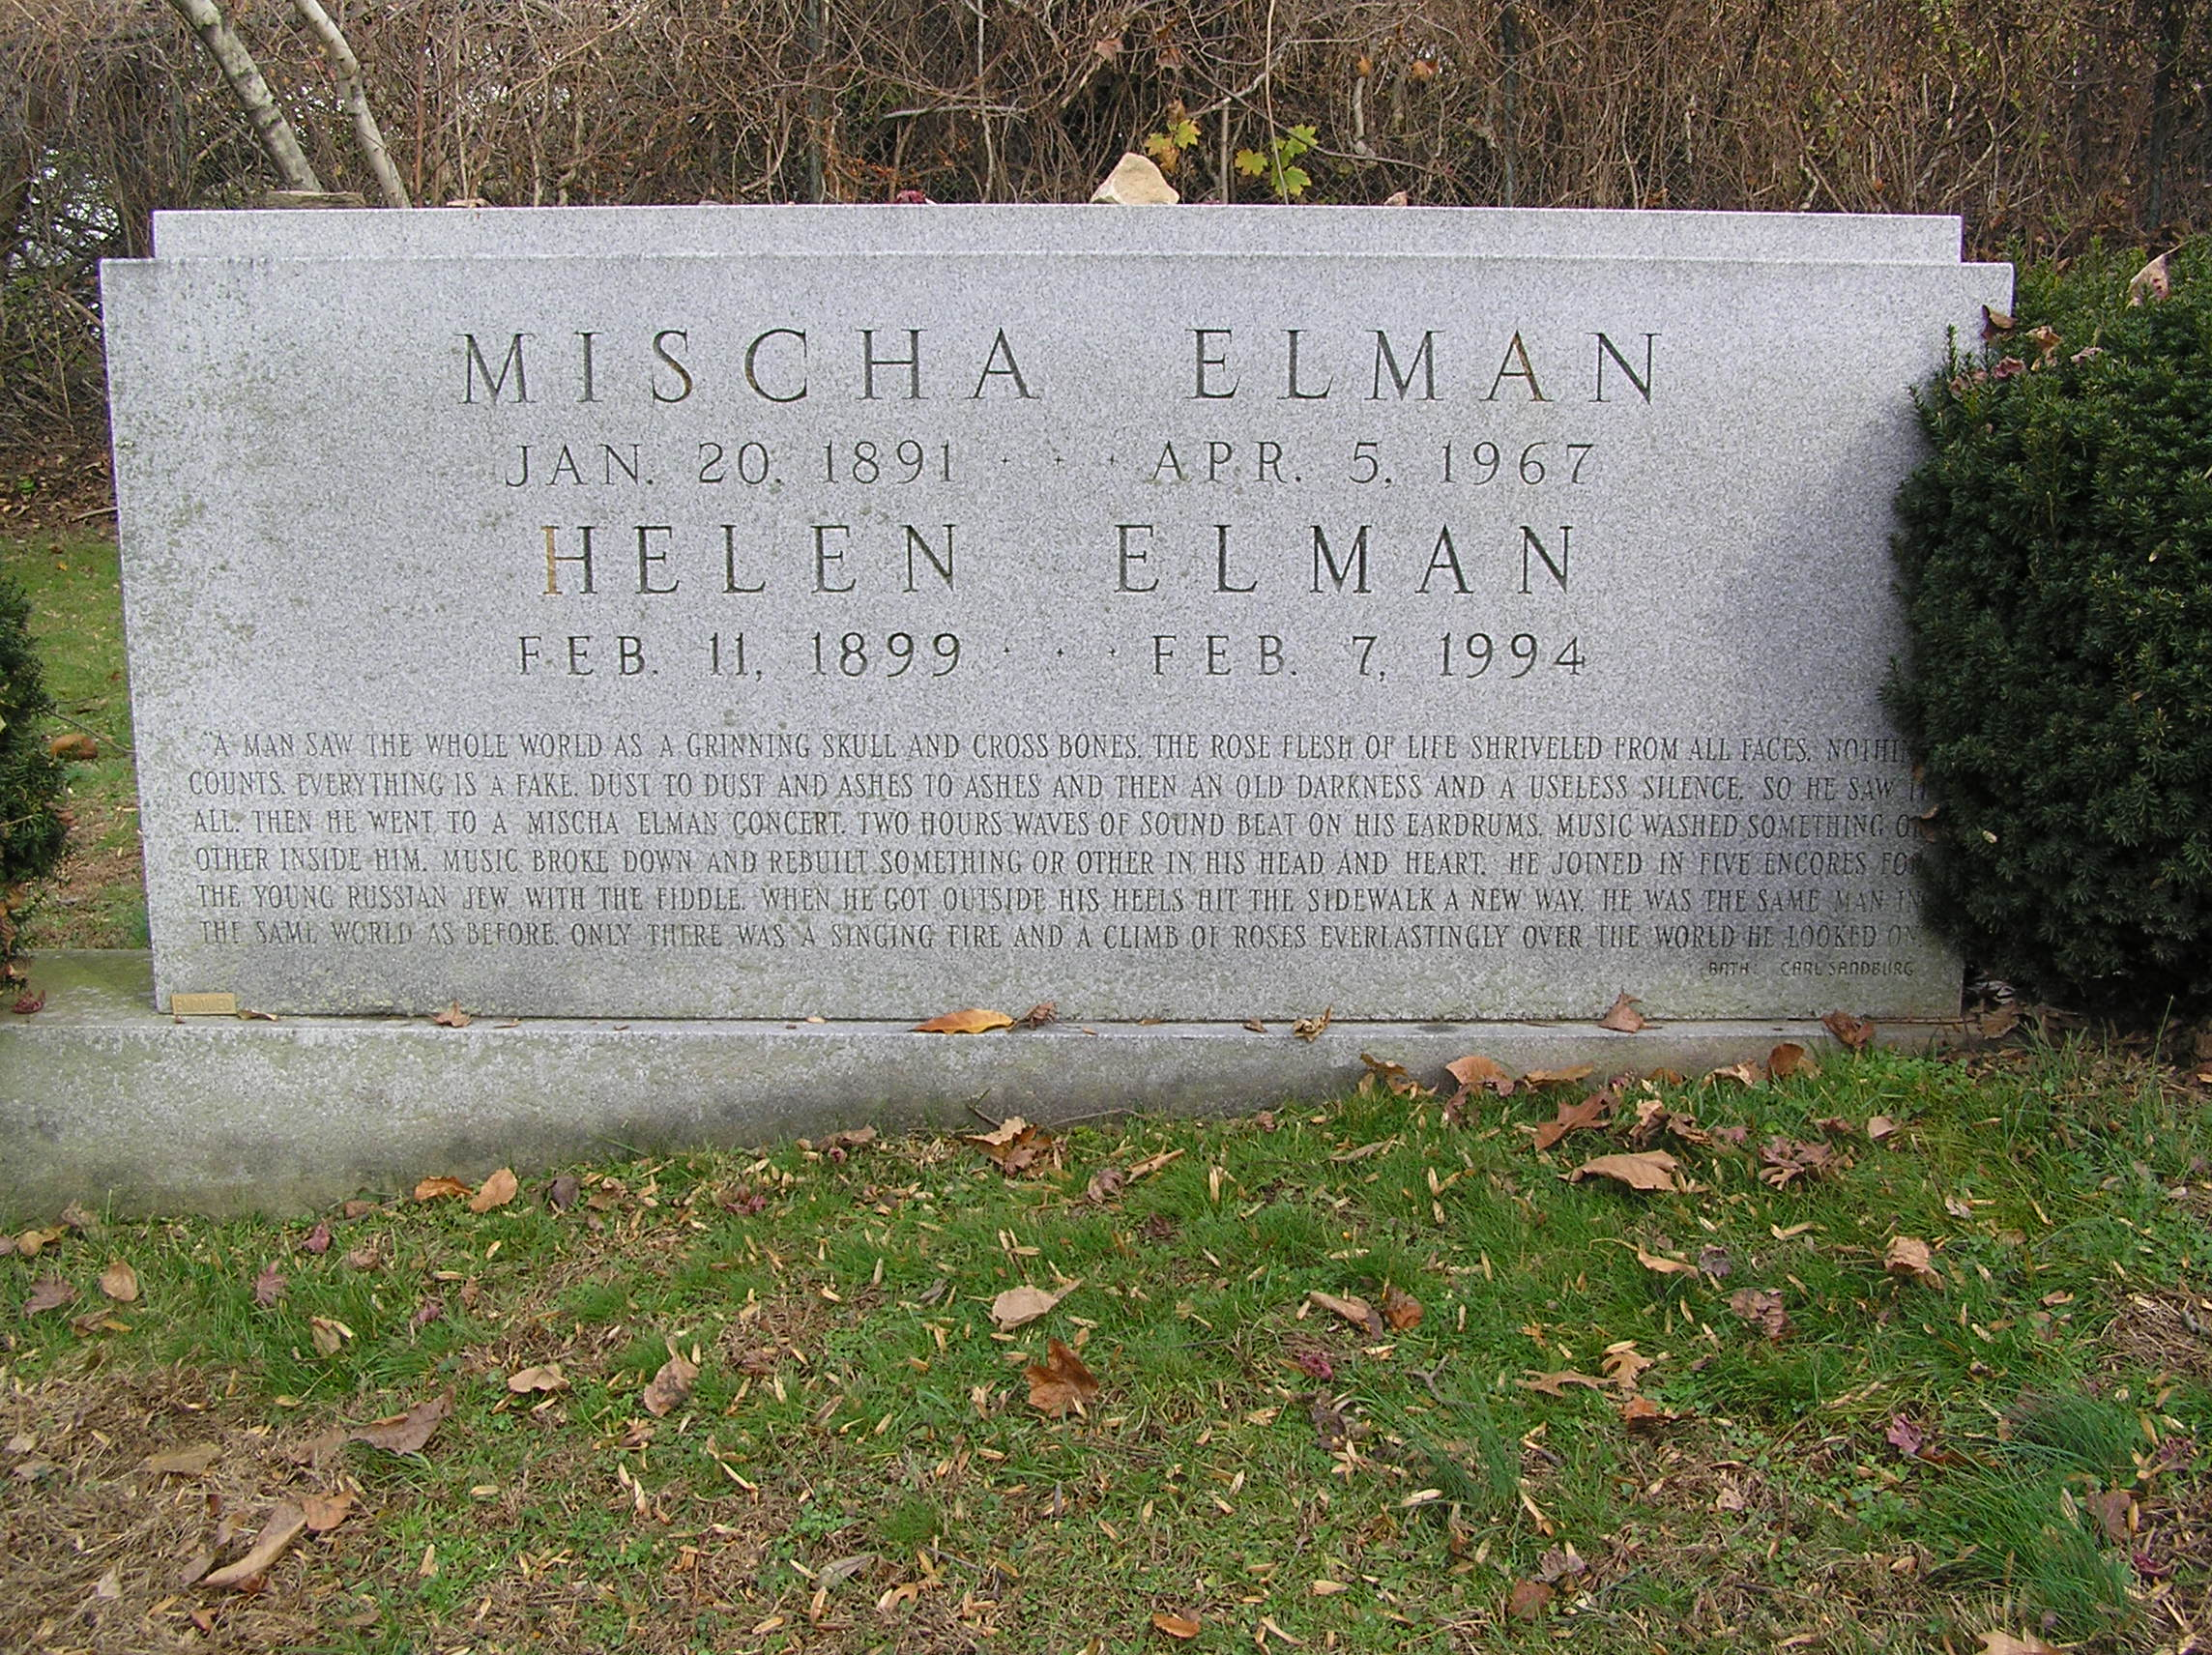 The headstone of Mischa Elman in Westchester Hills Cemetery